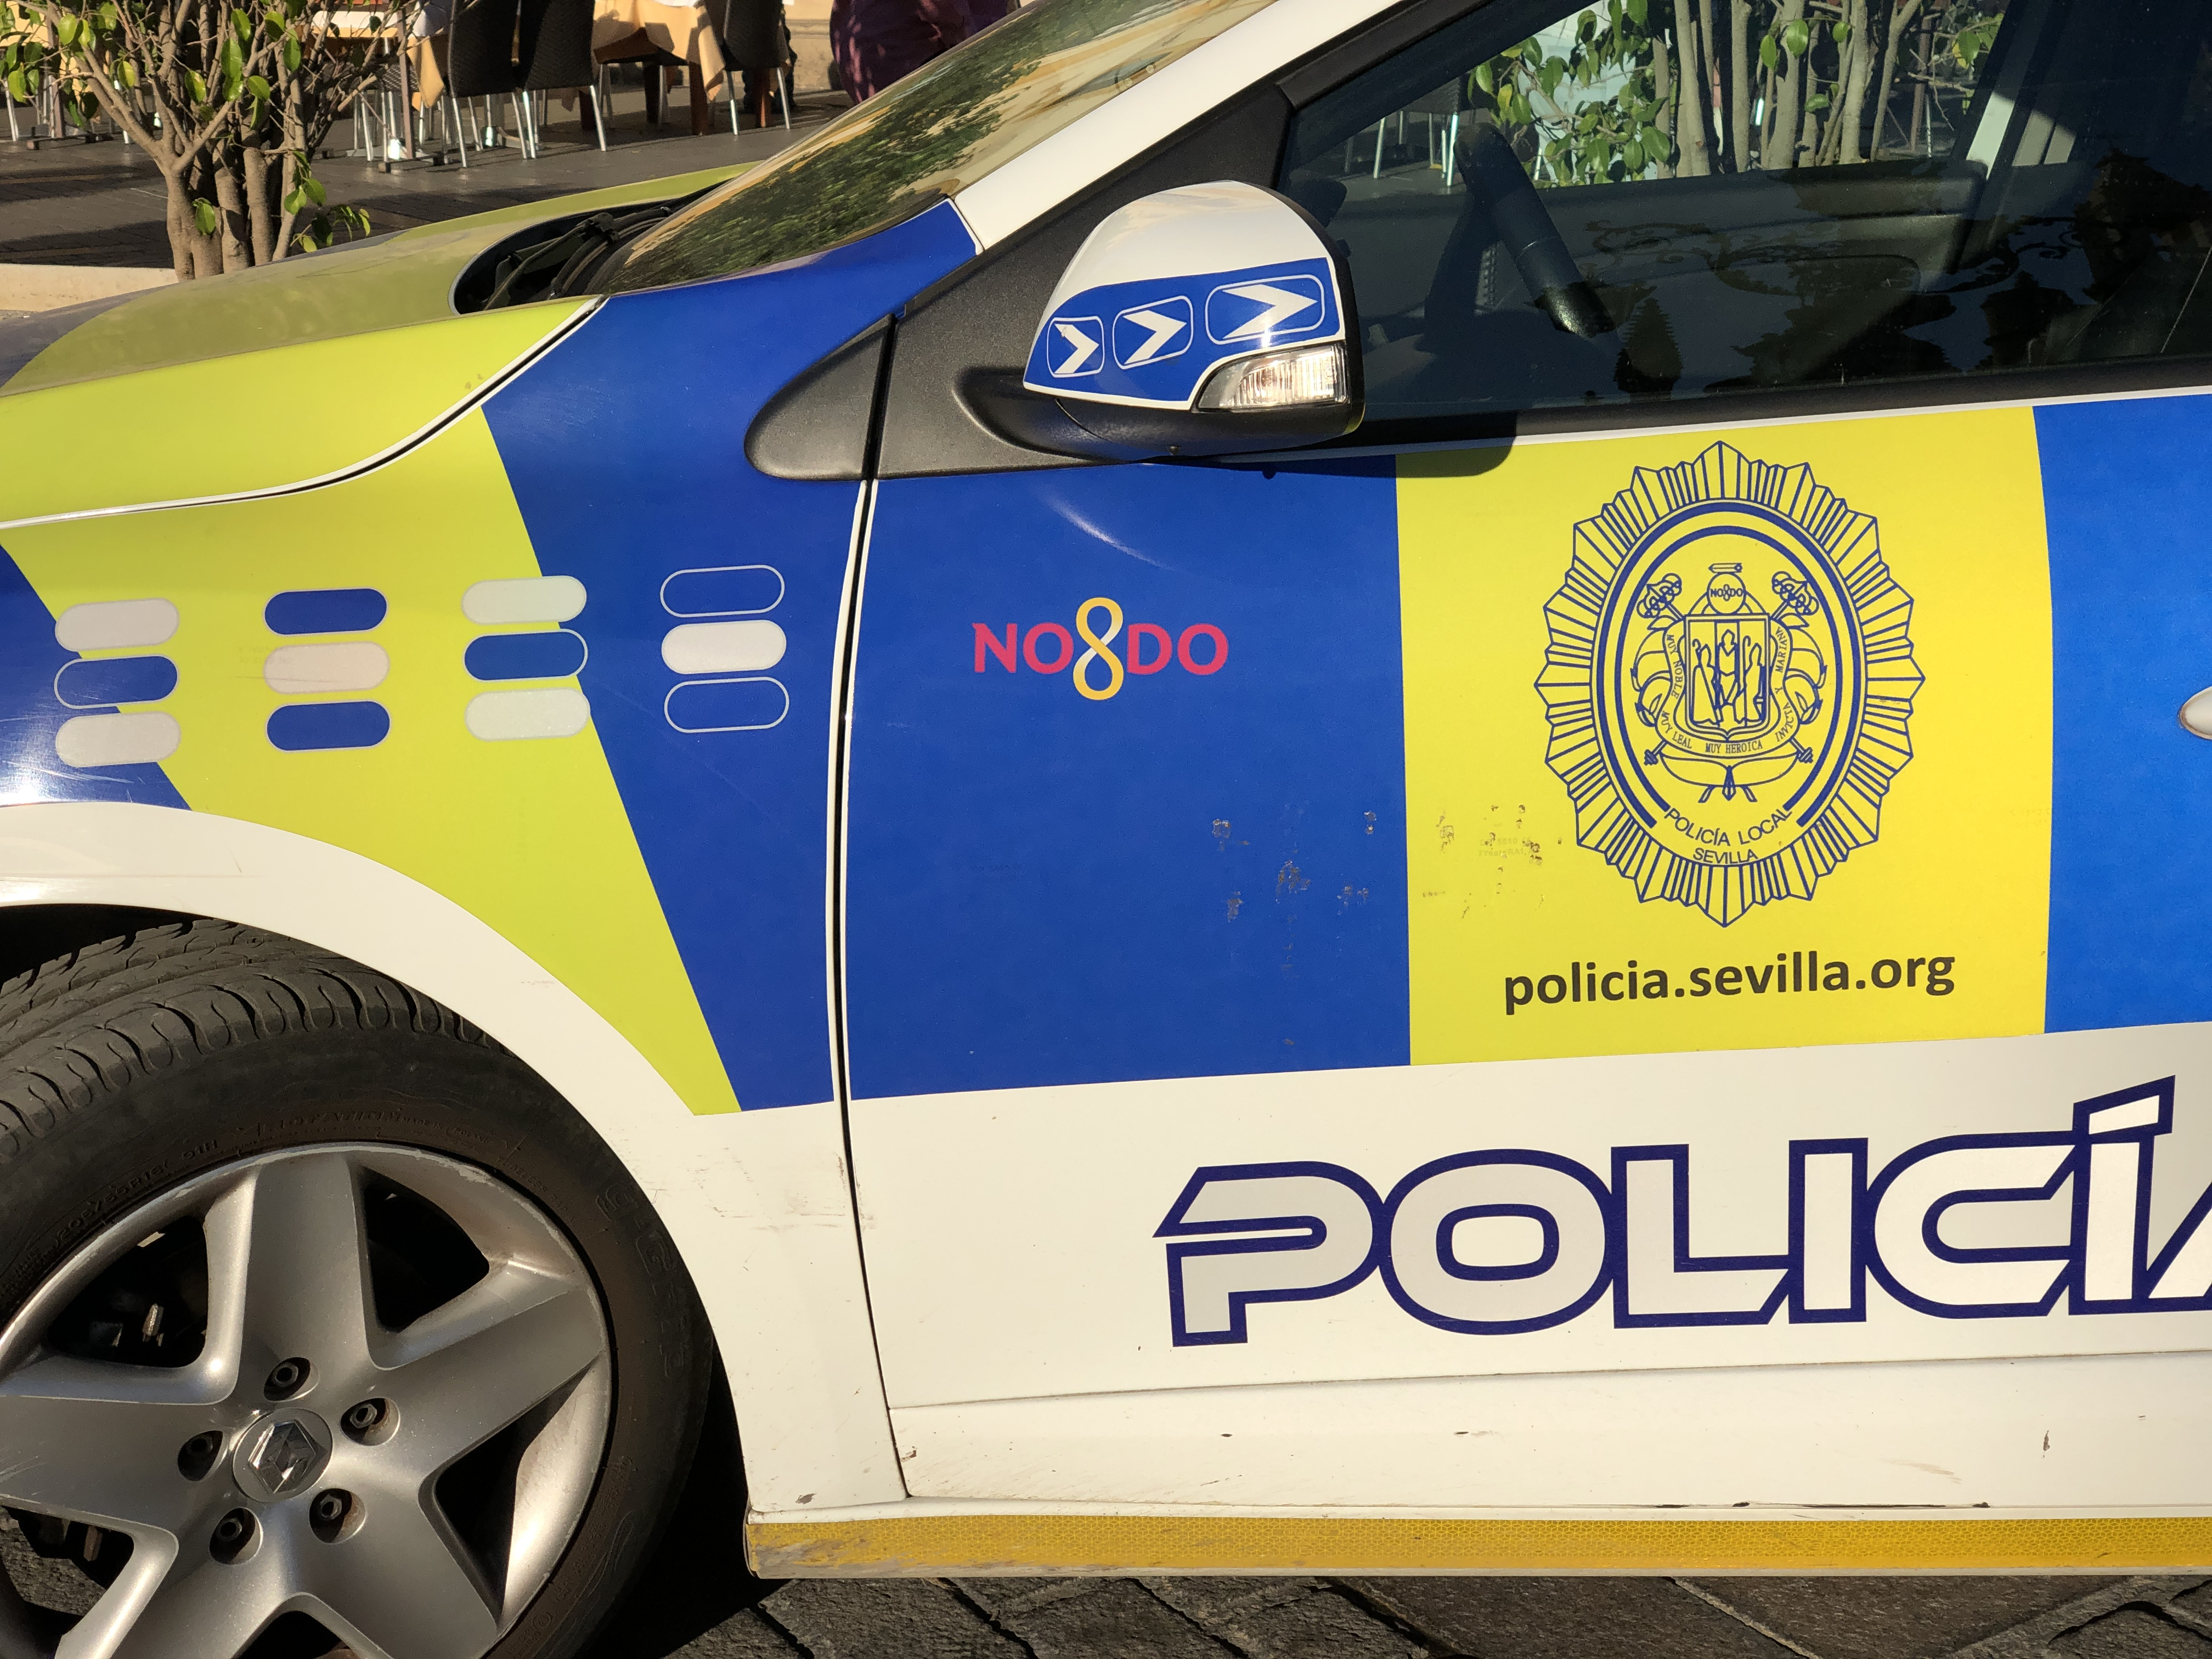 NO8DO on all Seville Police vehicles.